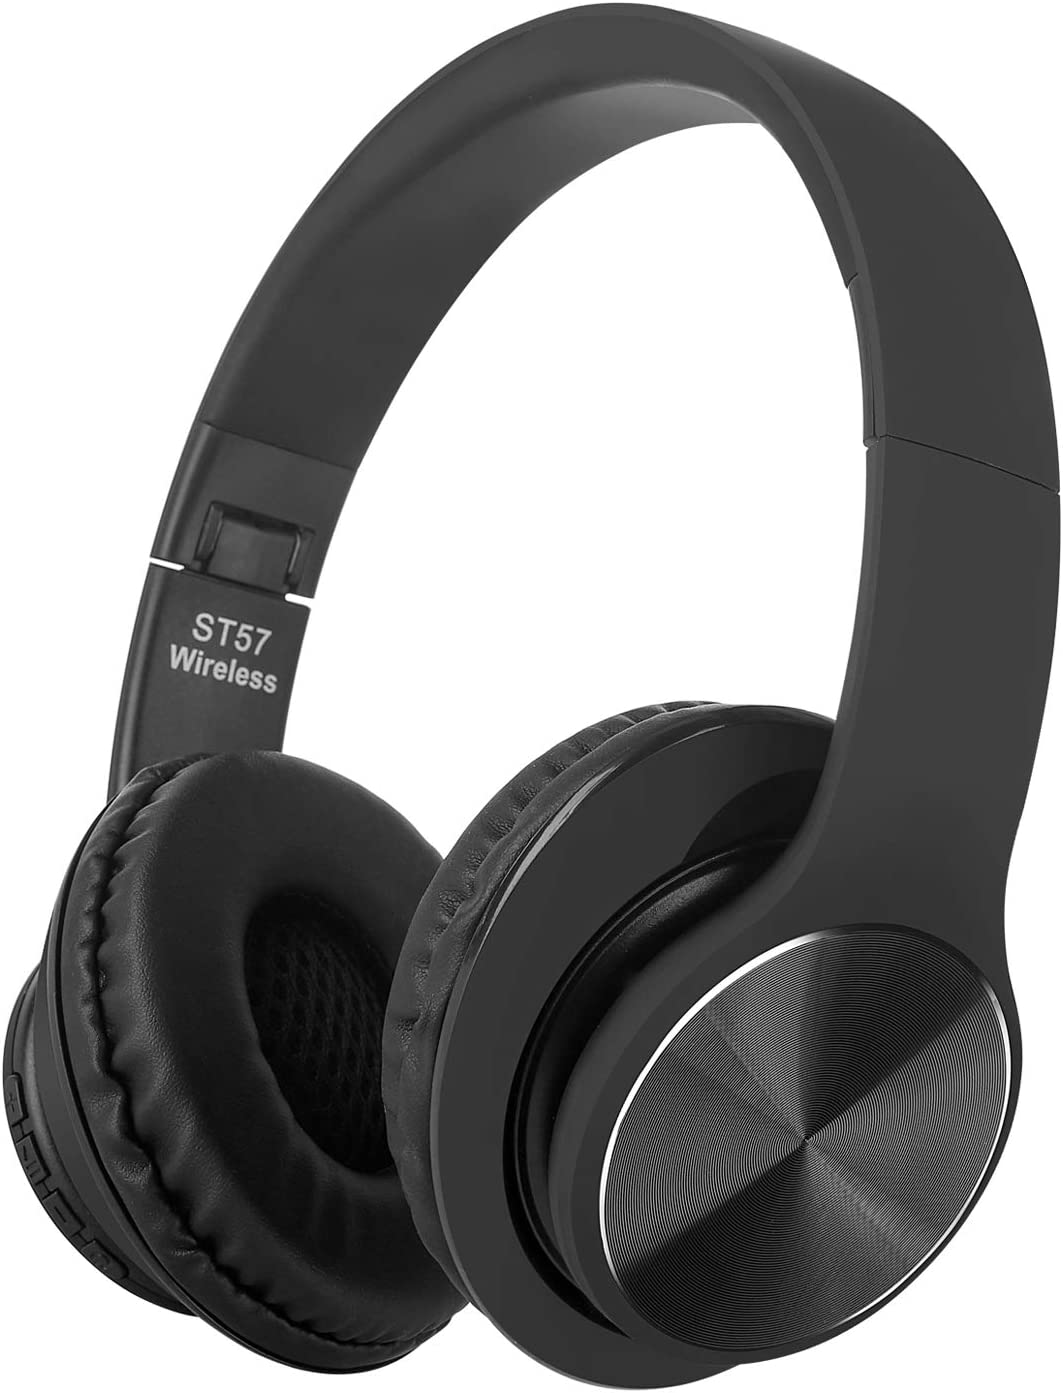 ST-57 Active Noise Cancelling Headphones Bluetooth Headphones with Microphone Deep Bass Wireless Headphones Over Ear, Comfortable Protein Earpads, for Workout iPhone,iPad,Samsung, Siri, Black